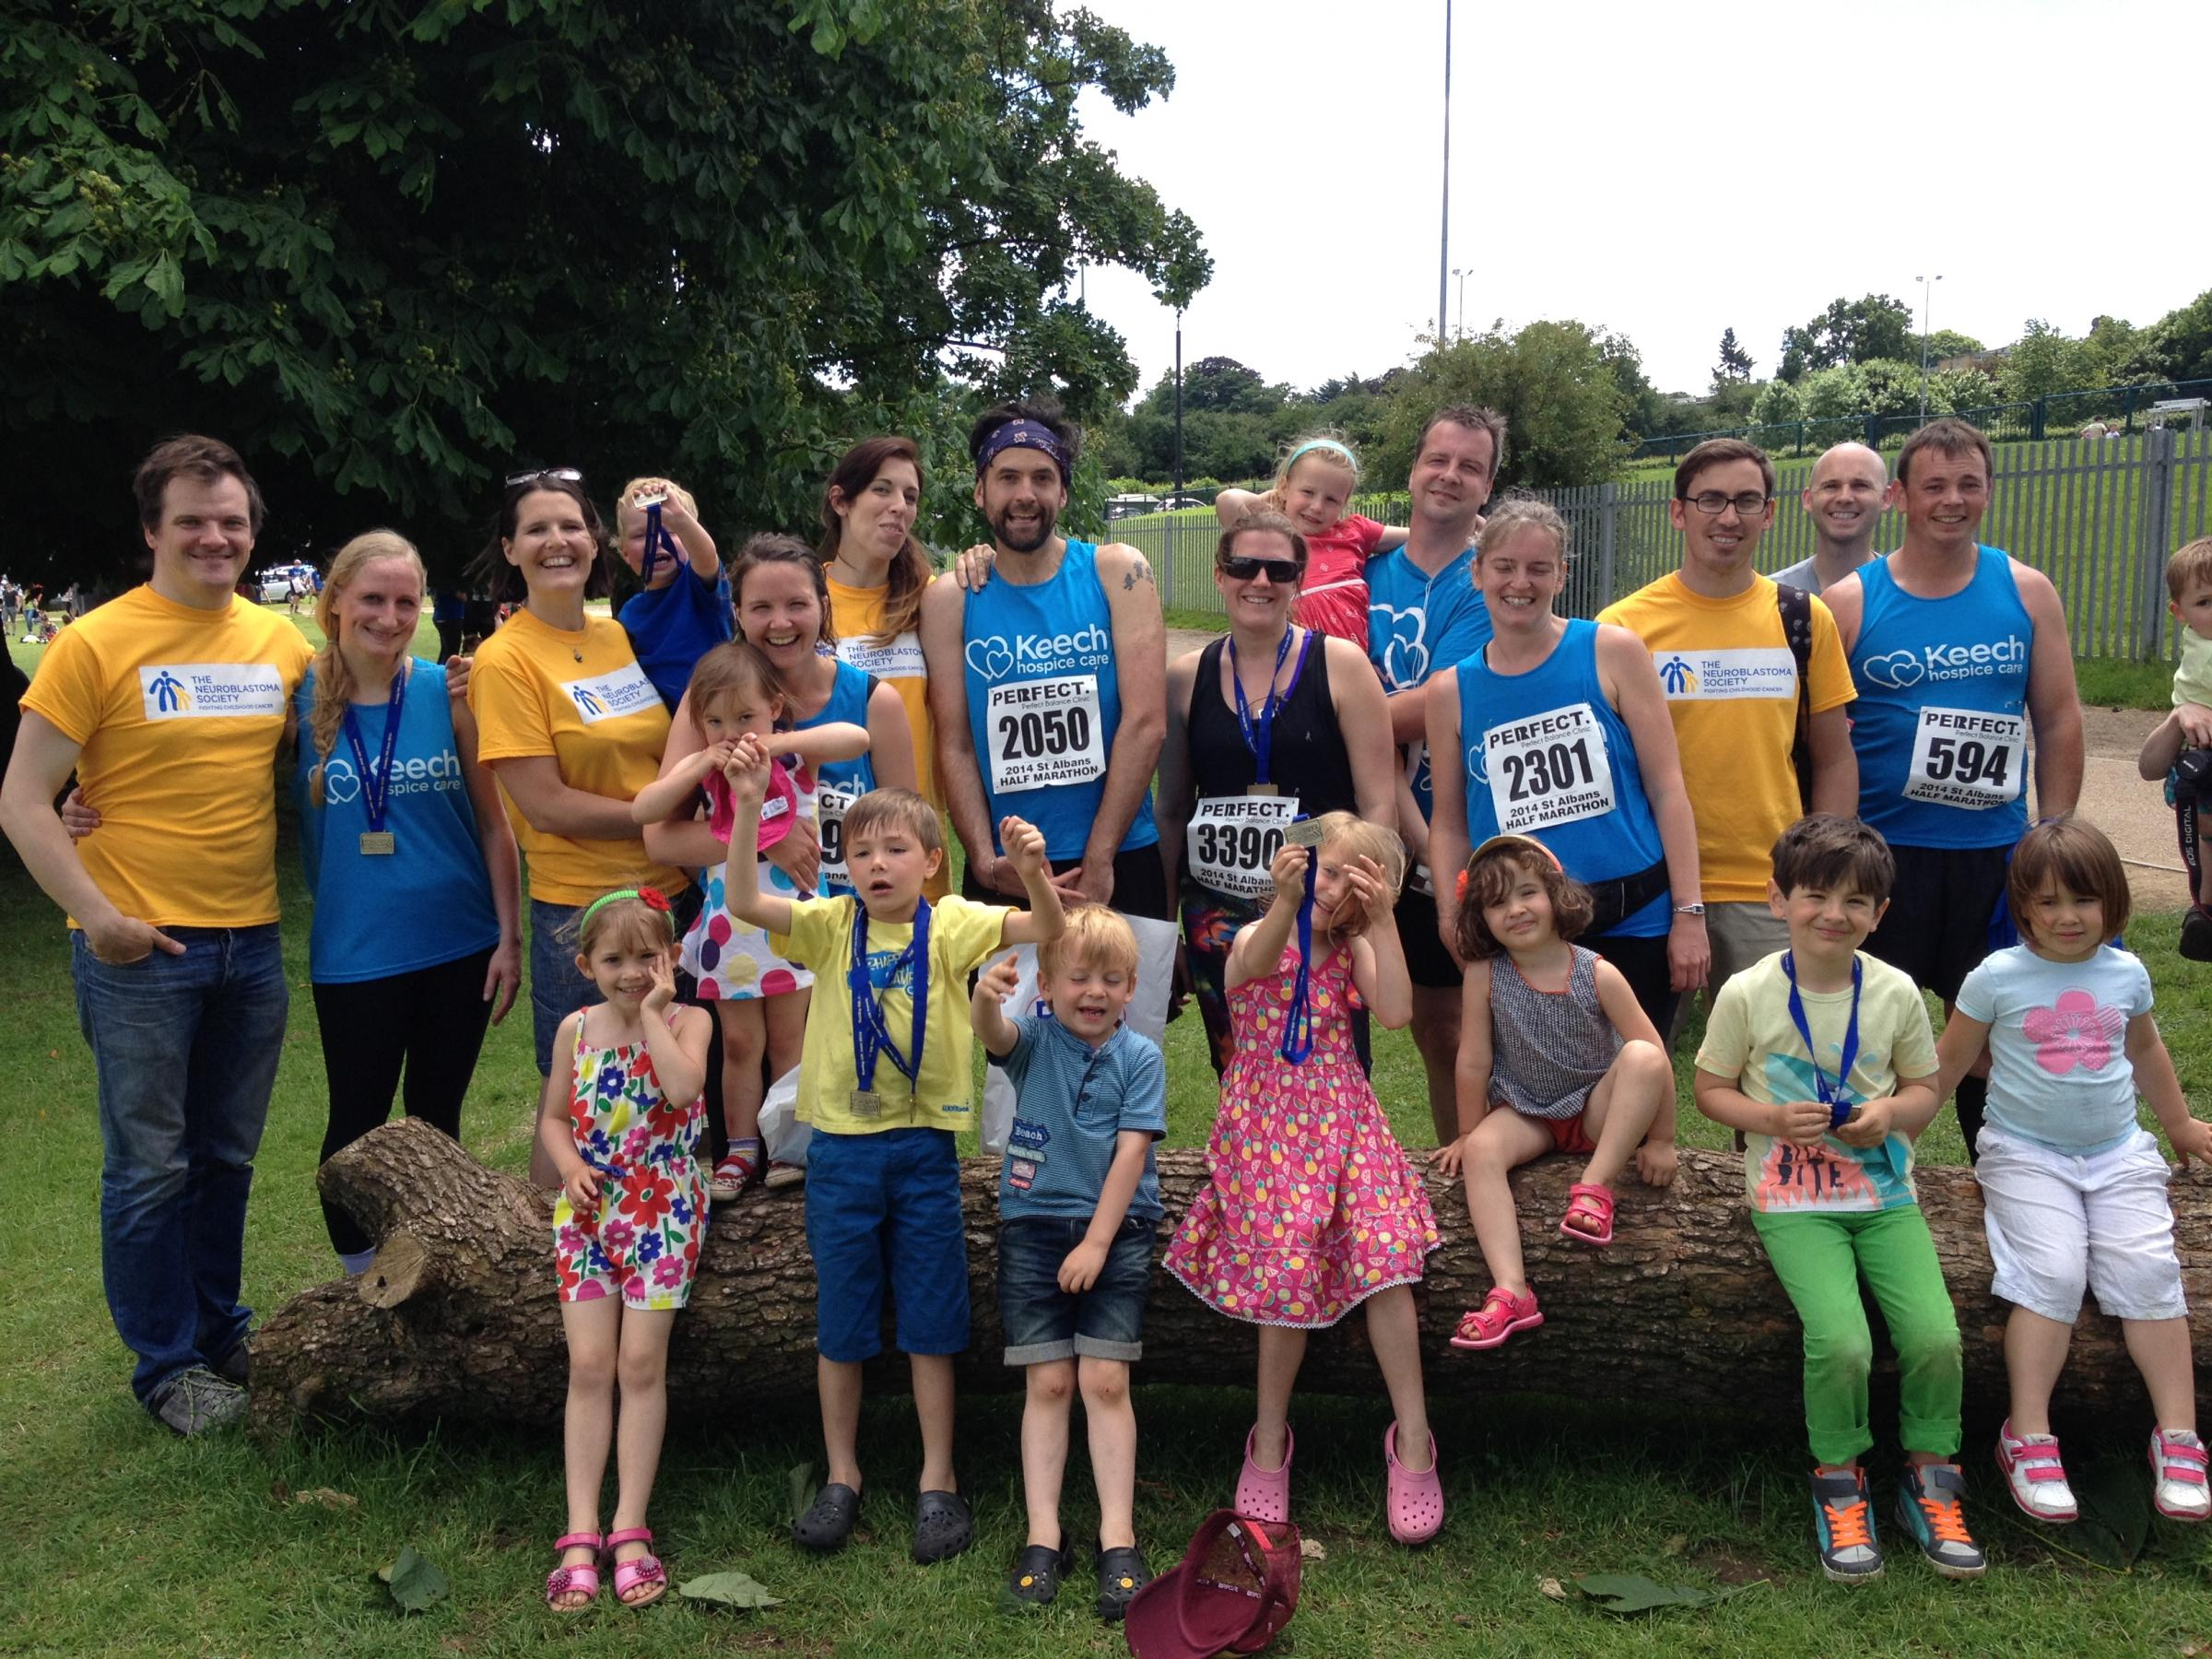 Family raises £2,500 after hospice charity run